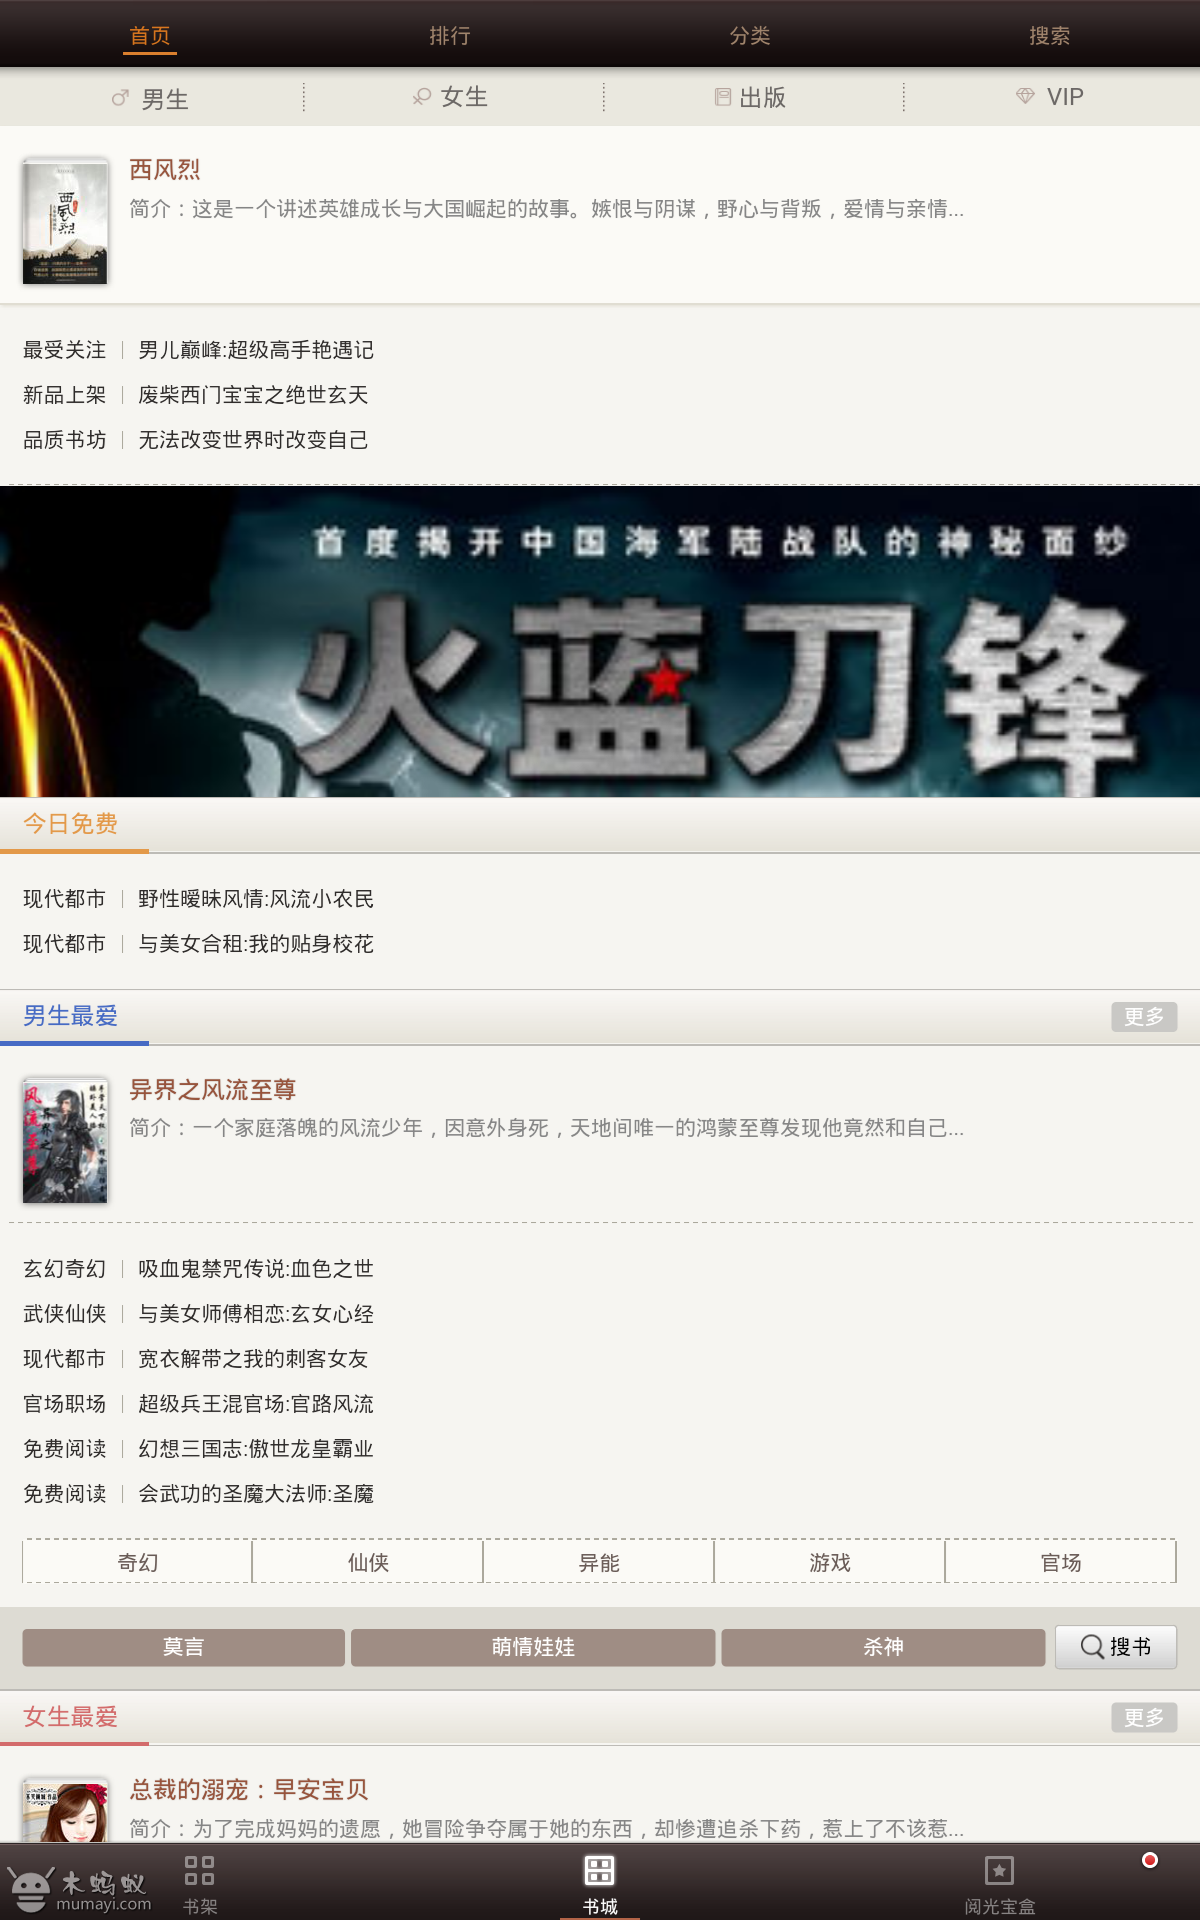 Screenshot_2012-11-23-15-37-06.png